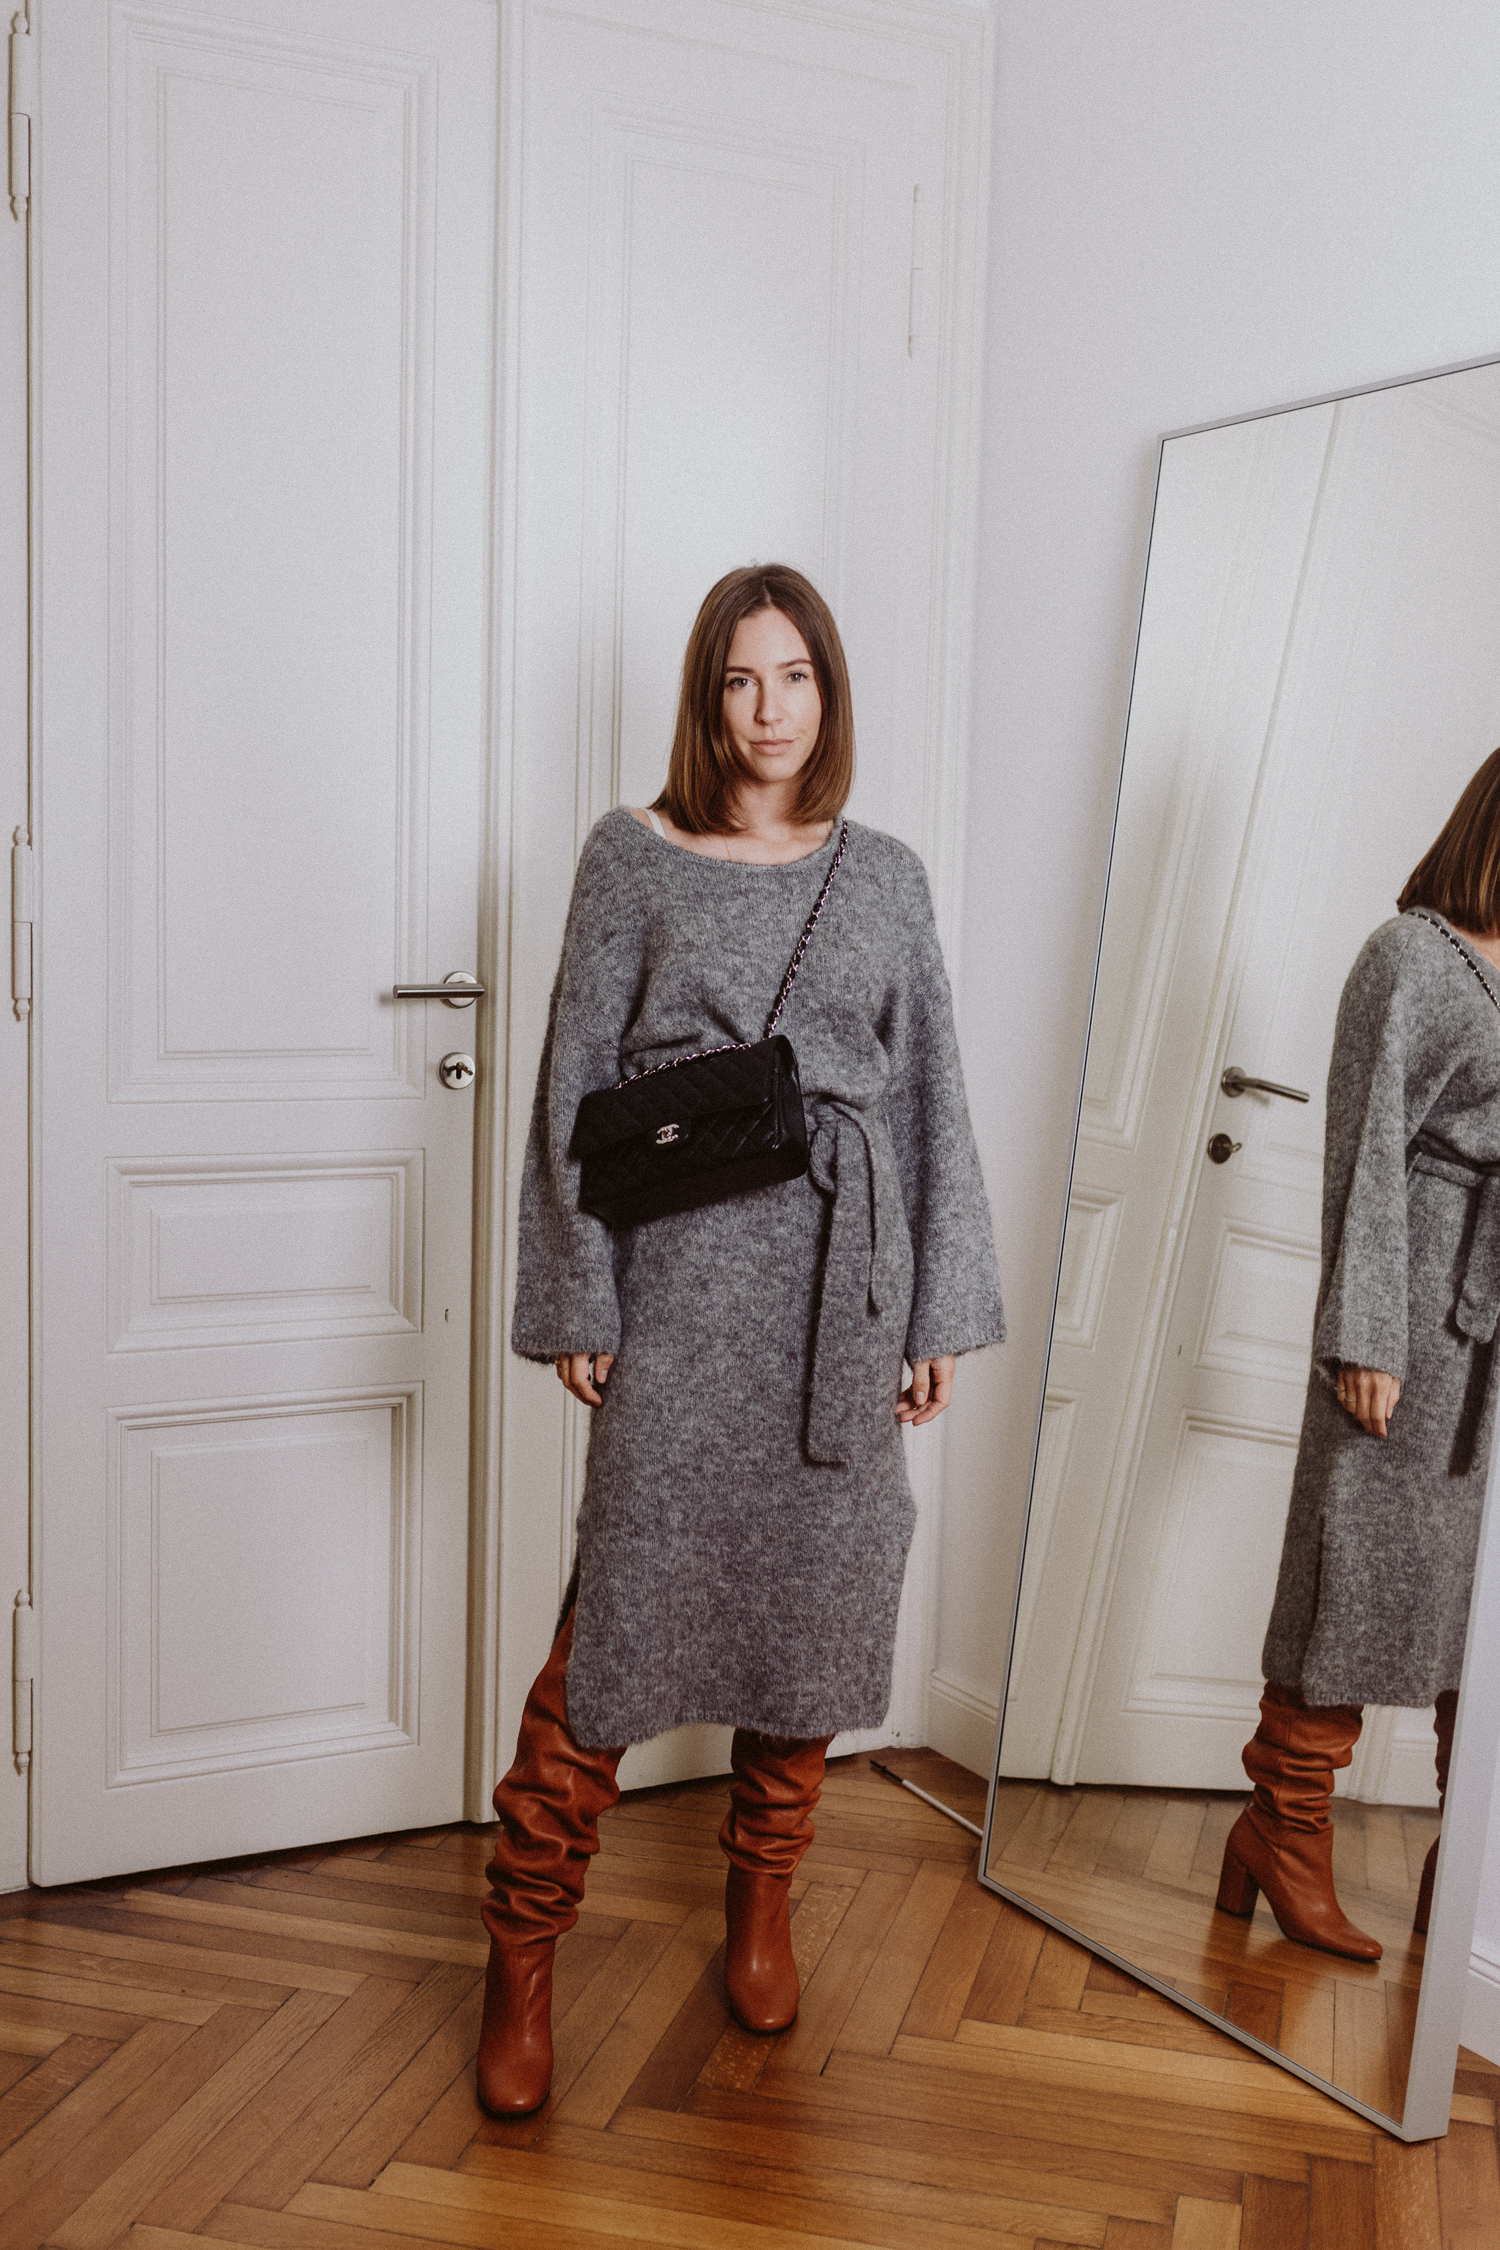 French Girl Style: The Knit EDIT(ED) - Love Daily Dose